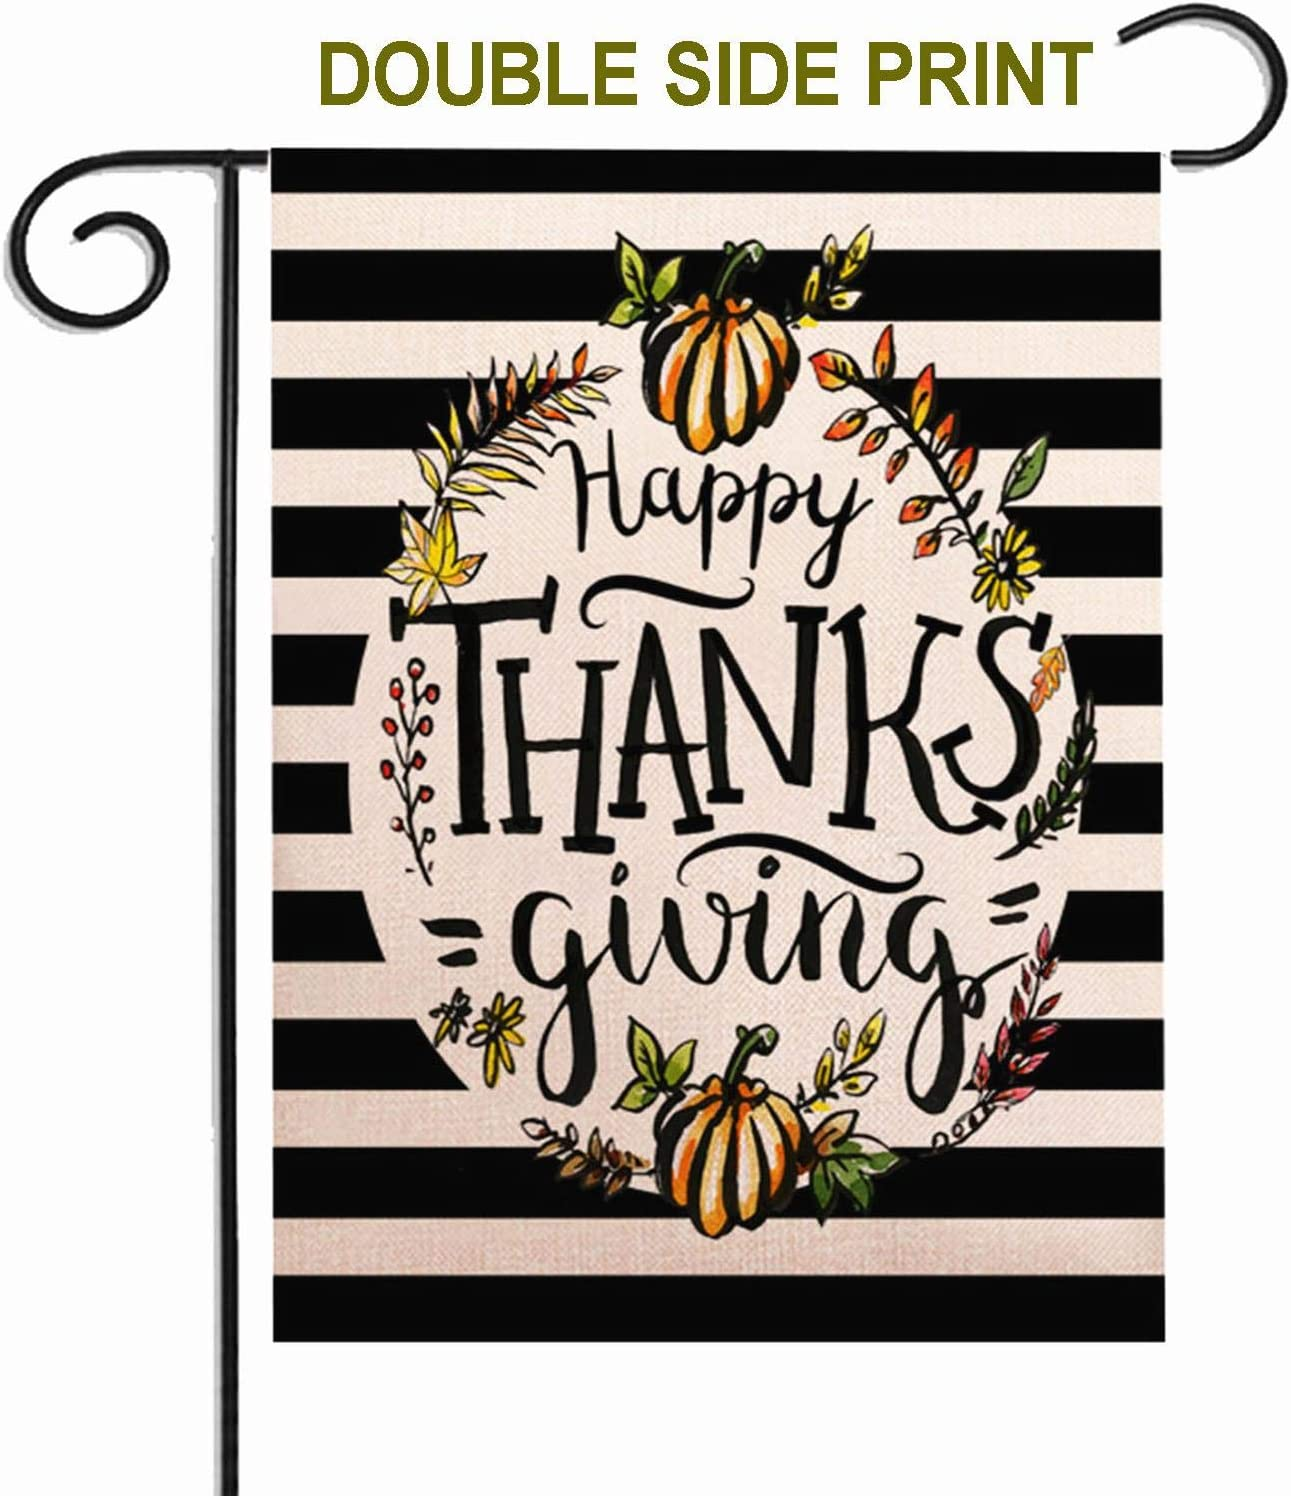 ZUEXT Happy Thanksgiving Fall Pumpkin Garden Flag Vertical Double Sided,Sewn Black and White Stripes Cotton Linen,Autumn Harvest Farmhouse Outdoor Yard Porch Patio Farm House Decoration 12.5 x 18 Inch